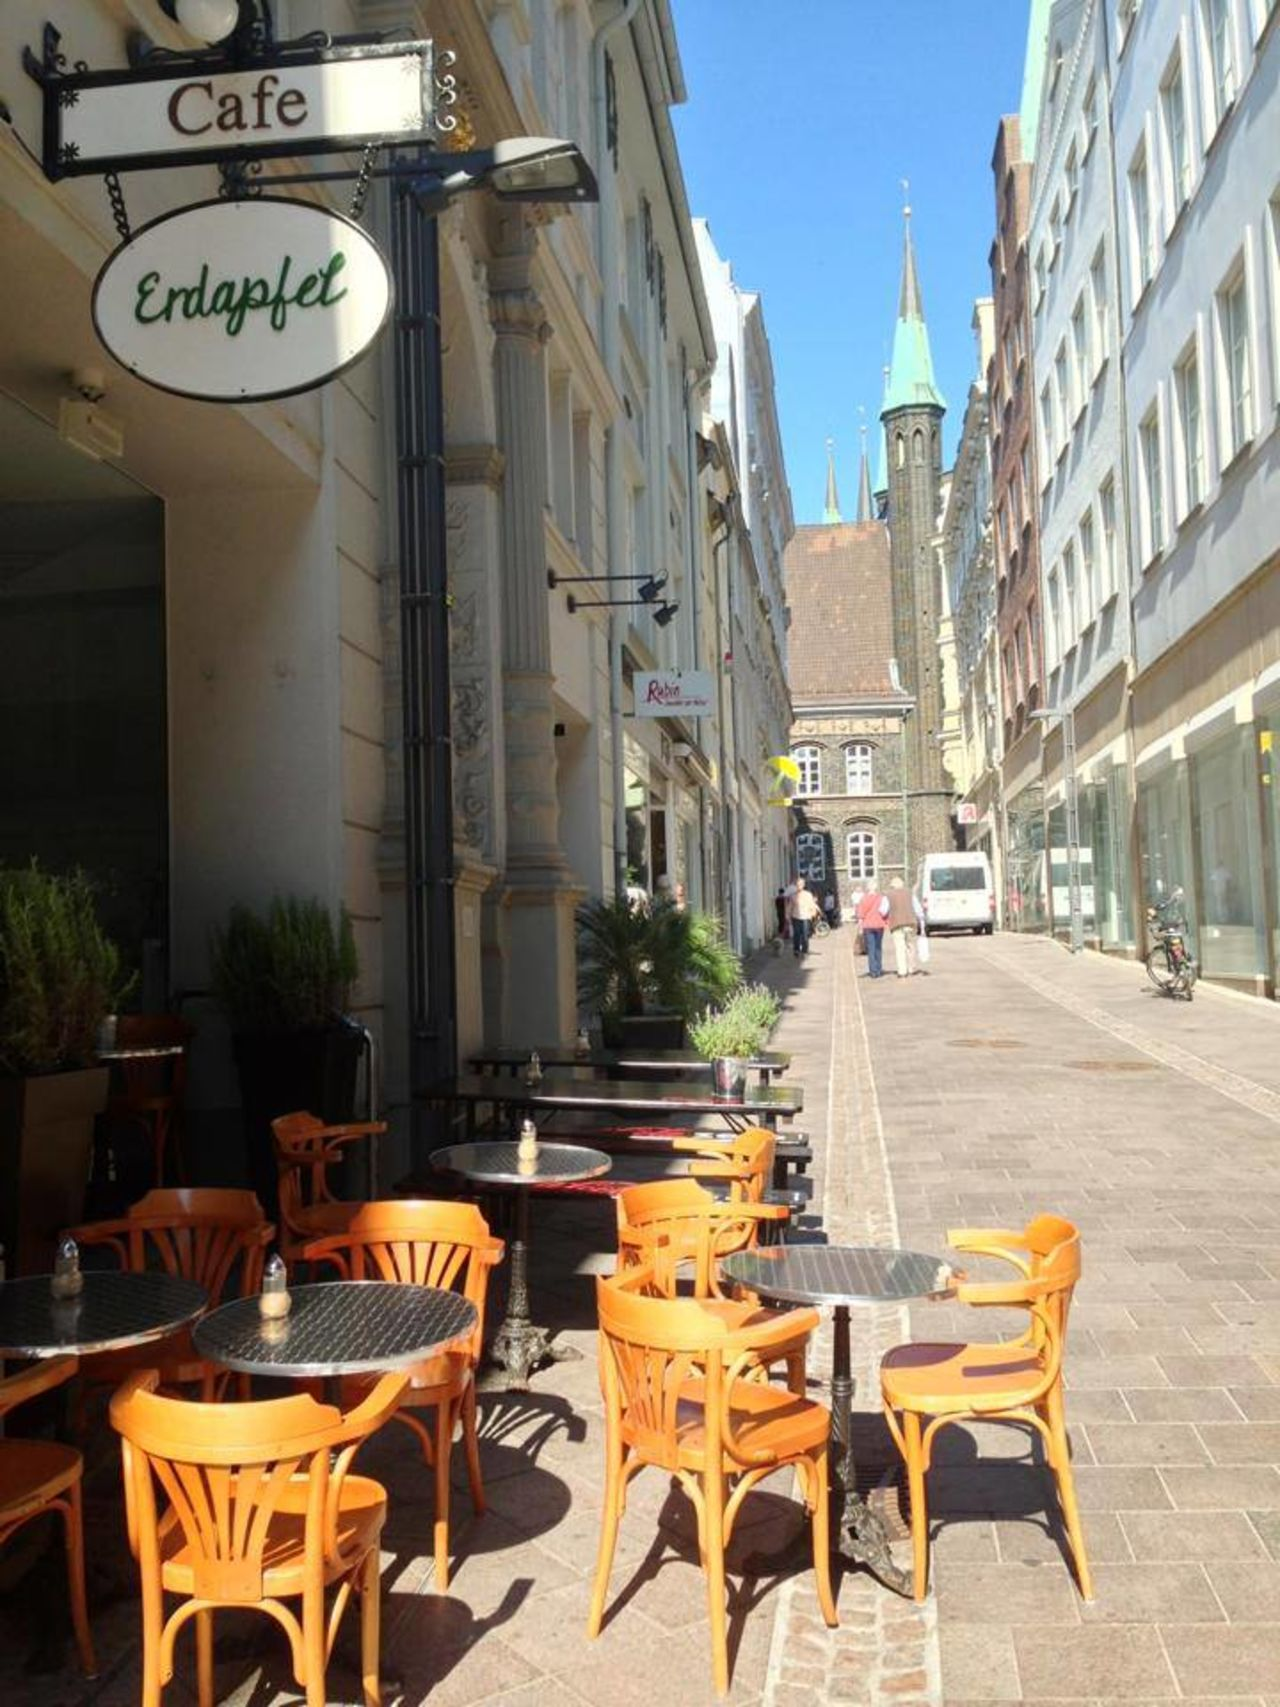 A photo of Café Erdapfel